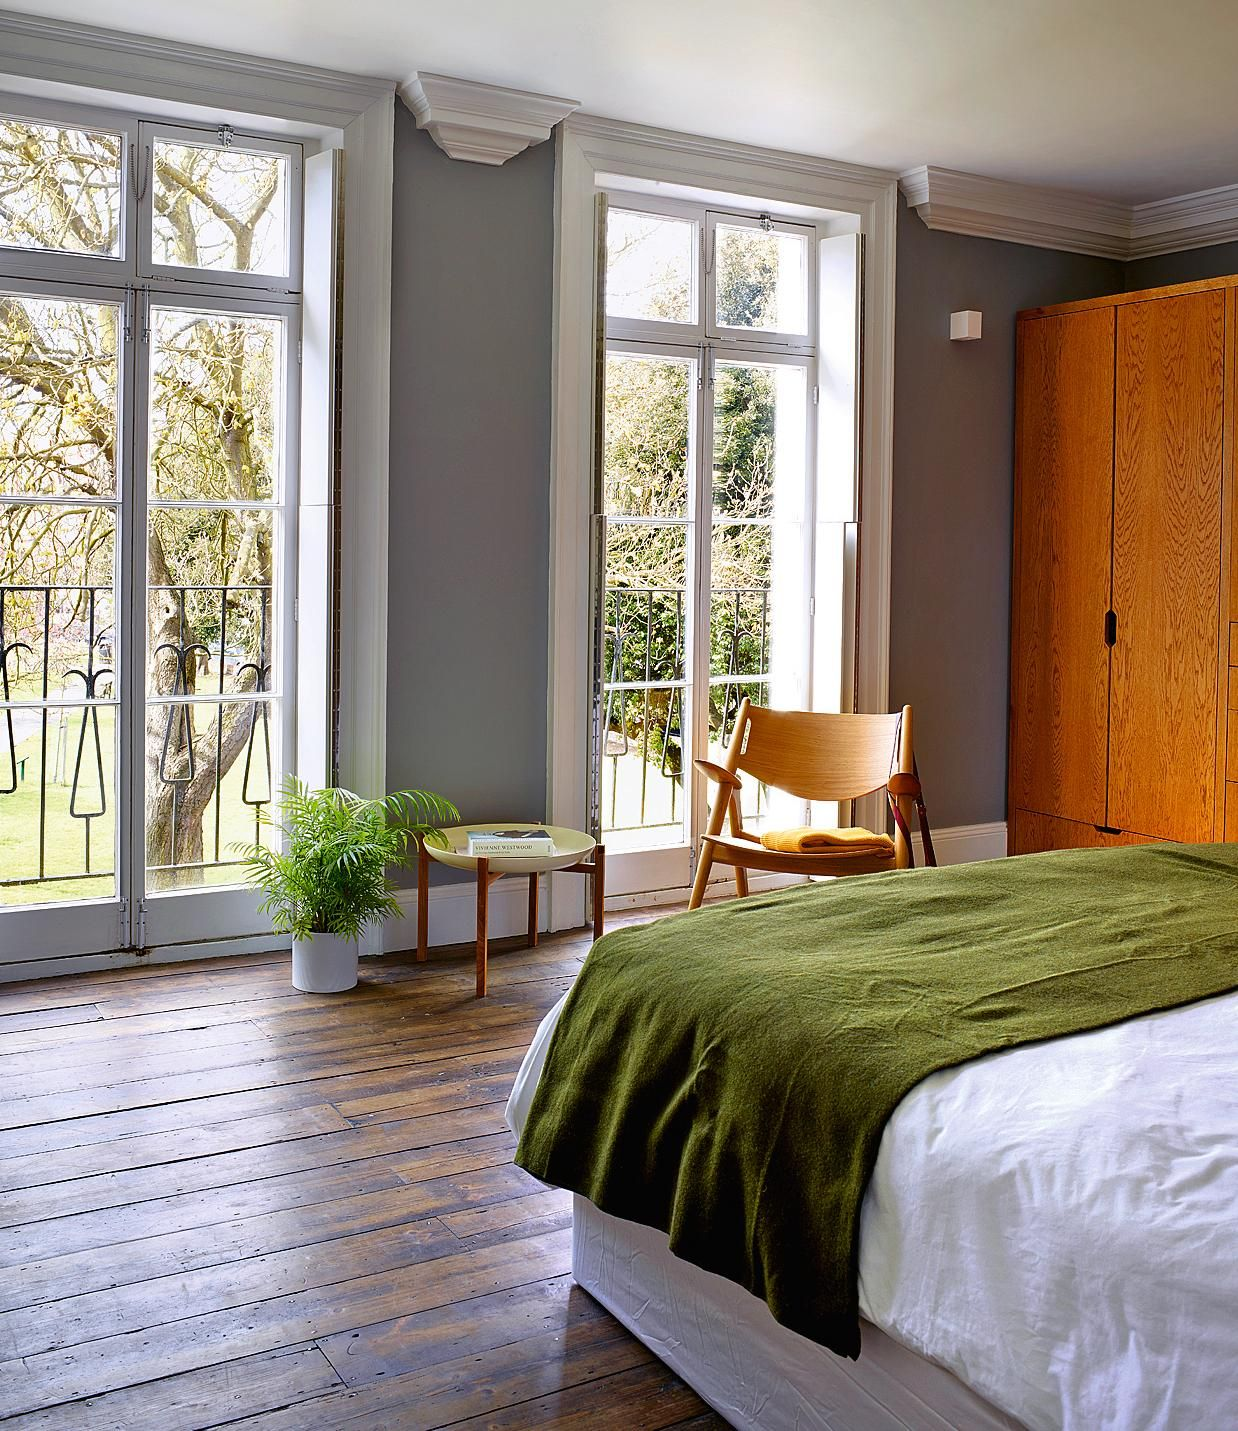 Bed beside window ideas  homes swapping the city for the seaside  my castle  pinterest